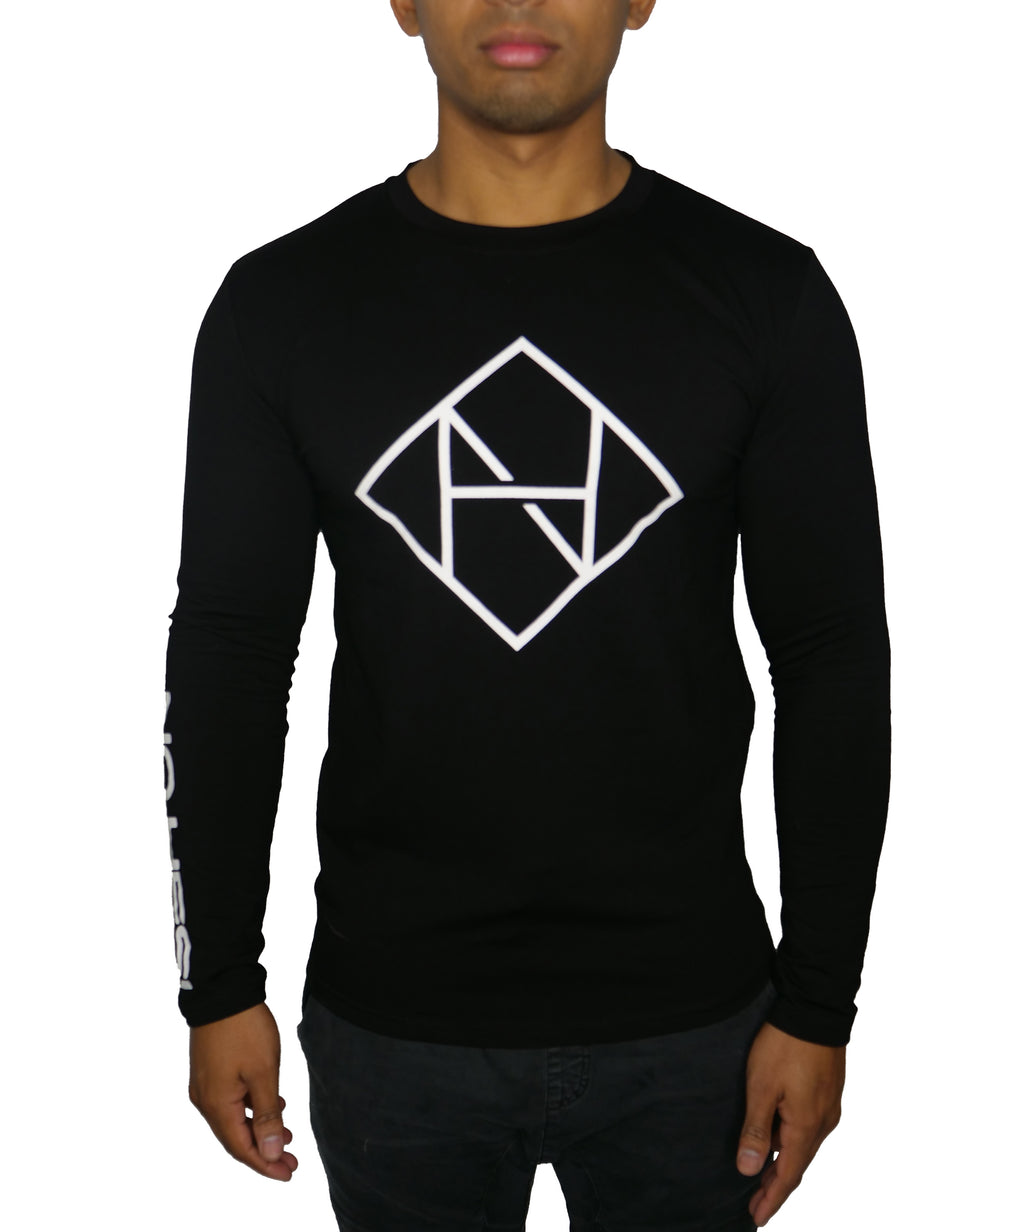 Long Sleeve No Hesi Shirt (Unisex)